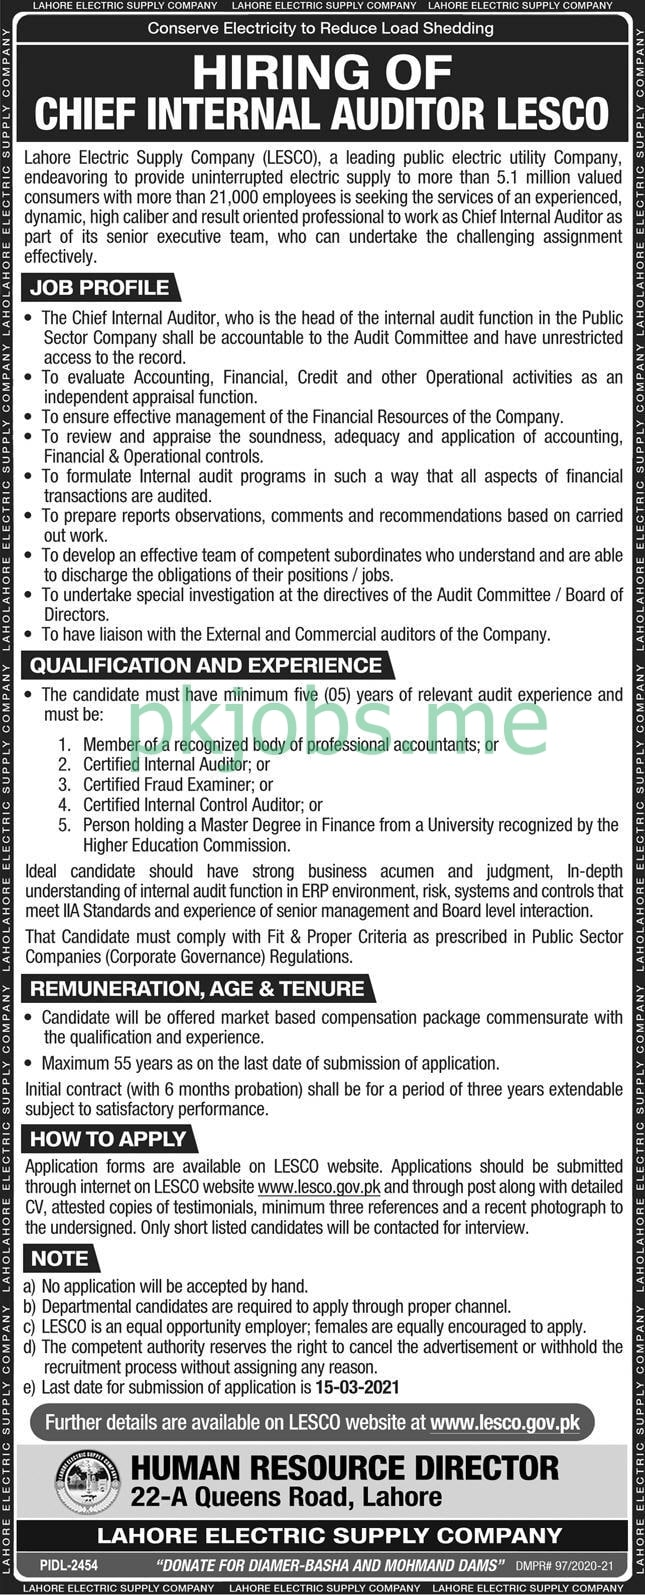 Latest Lahore Electric Supply Company Management Posts 2021